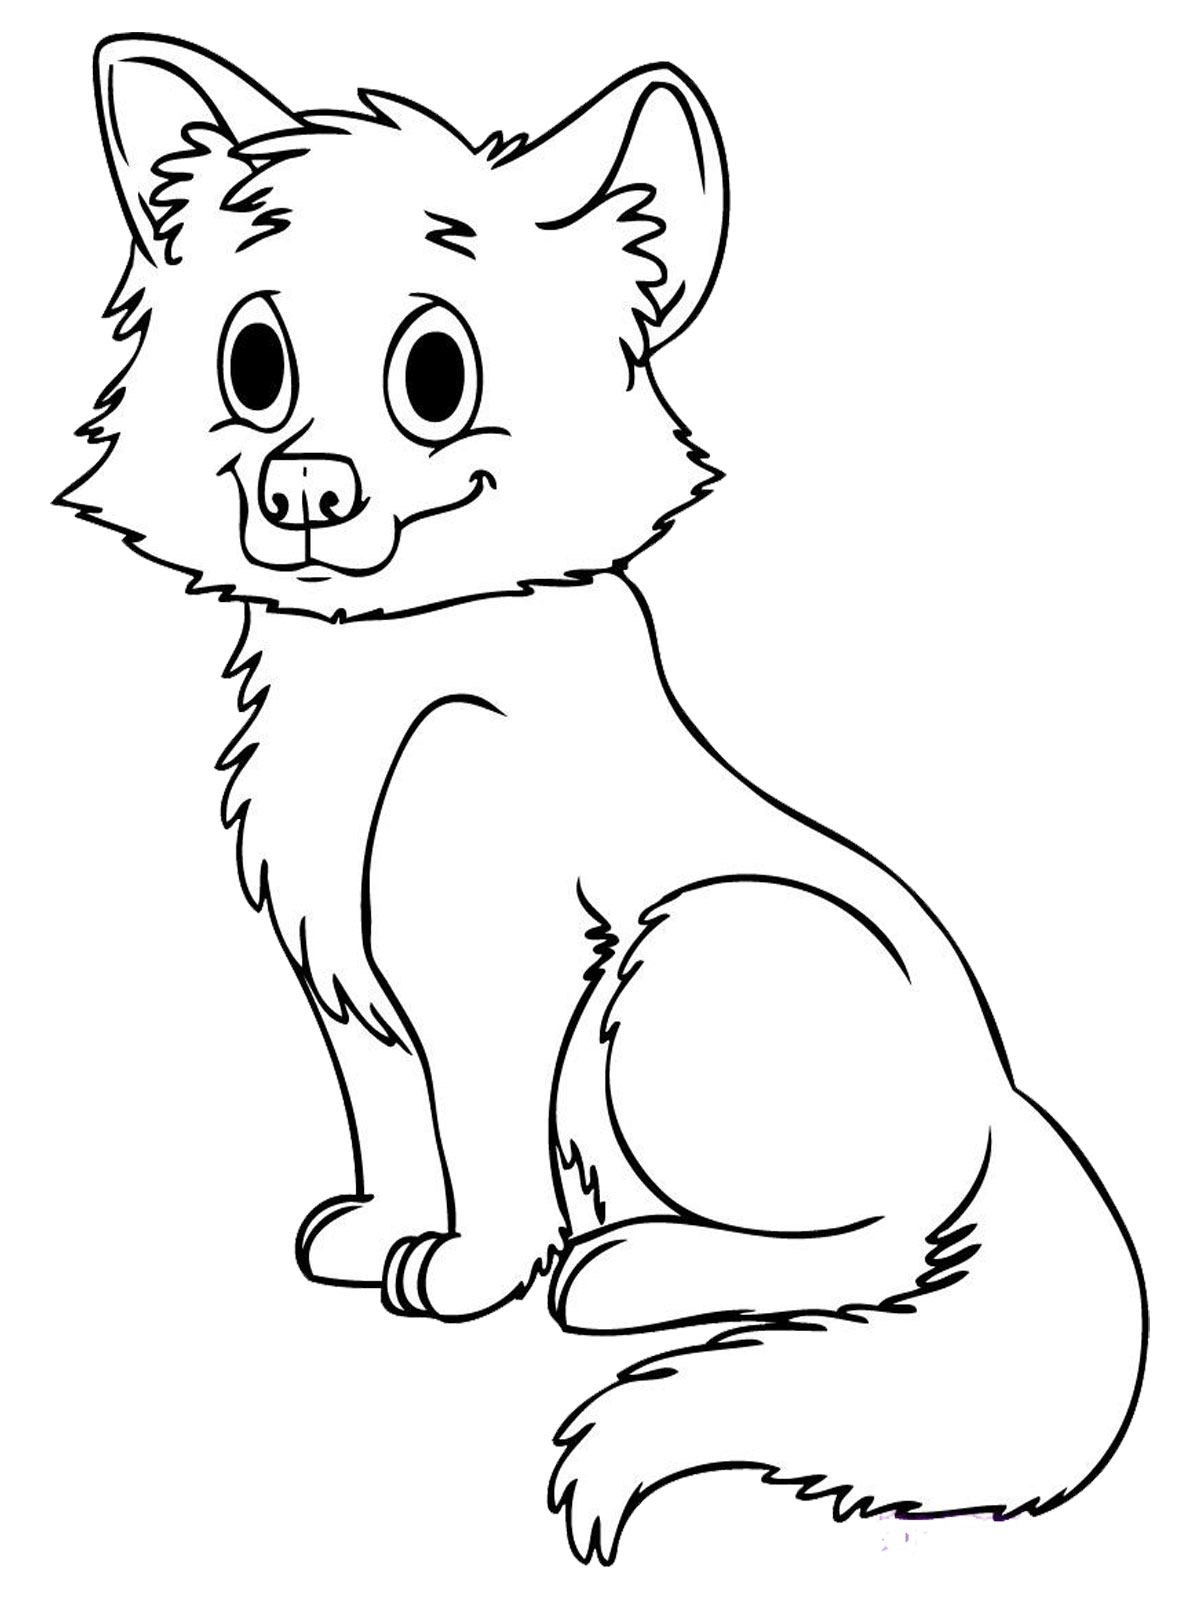 Baby animal coloring pages realistic coloring pages for Baby animal coloring page